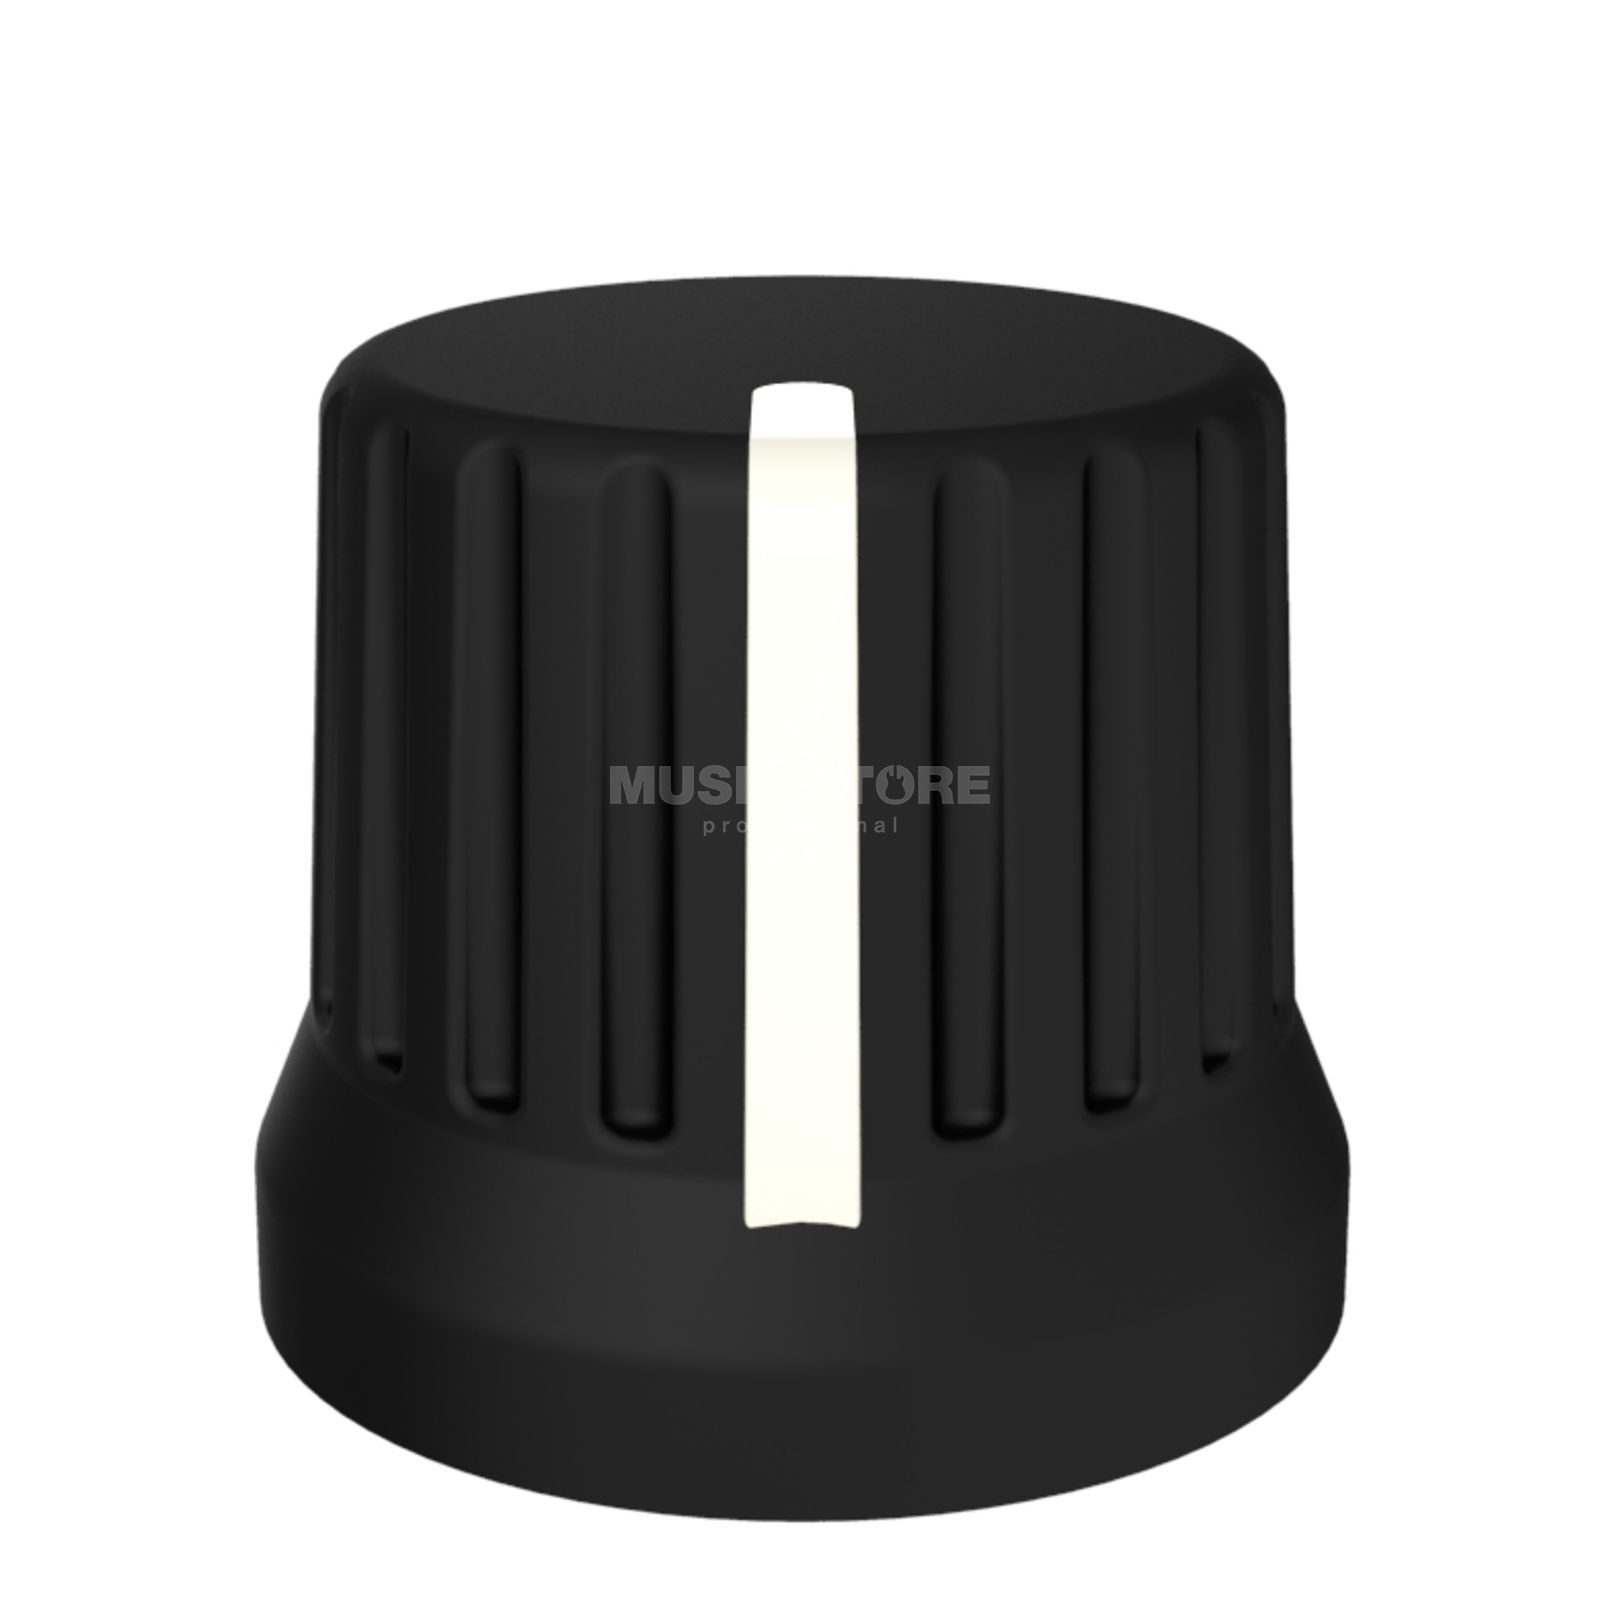 DJ TECHTOOLS Chroma Caps Fatty Knob black  Image du produit